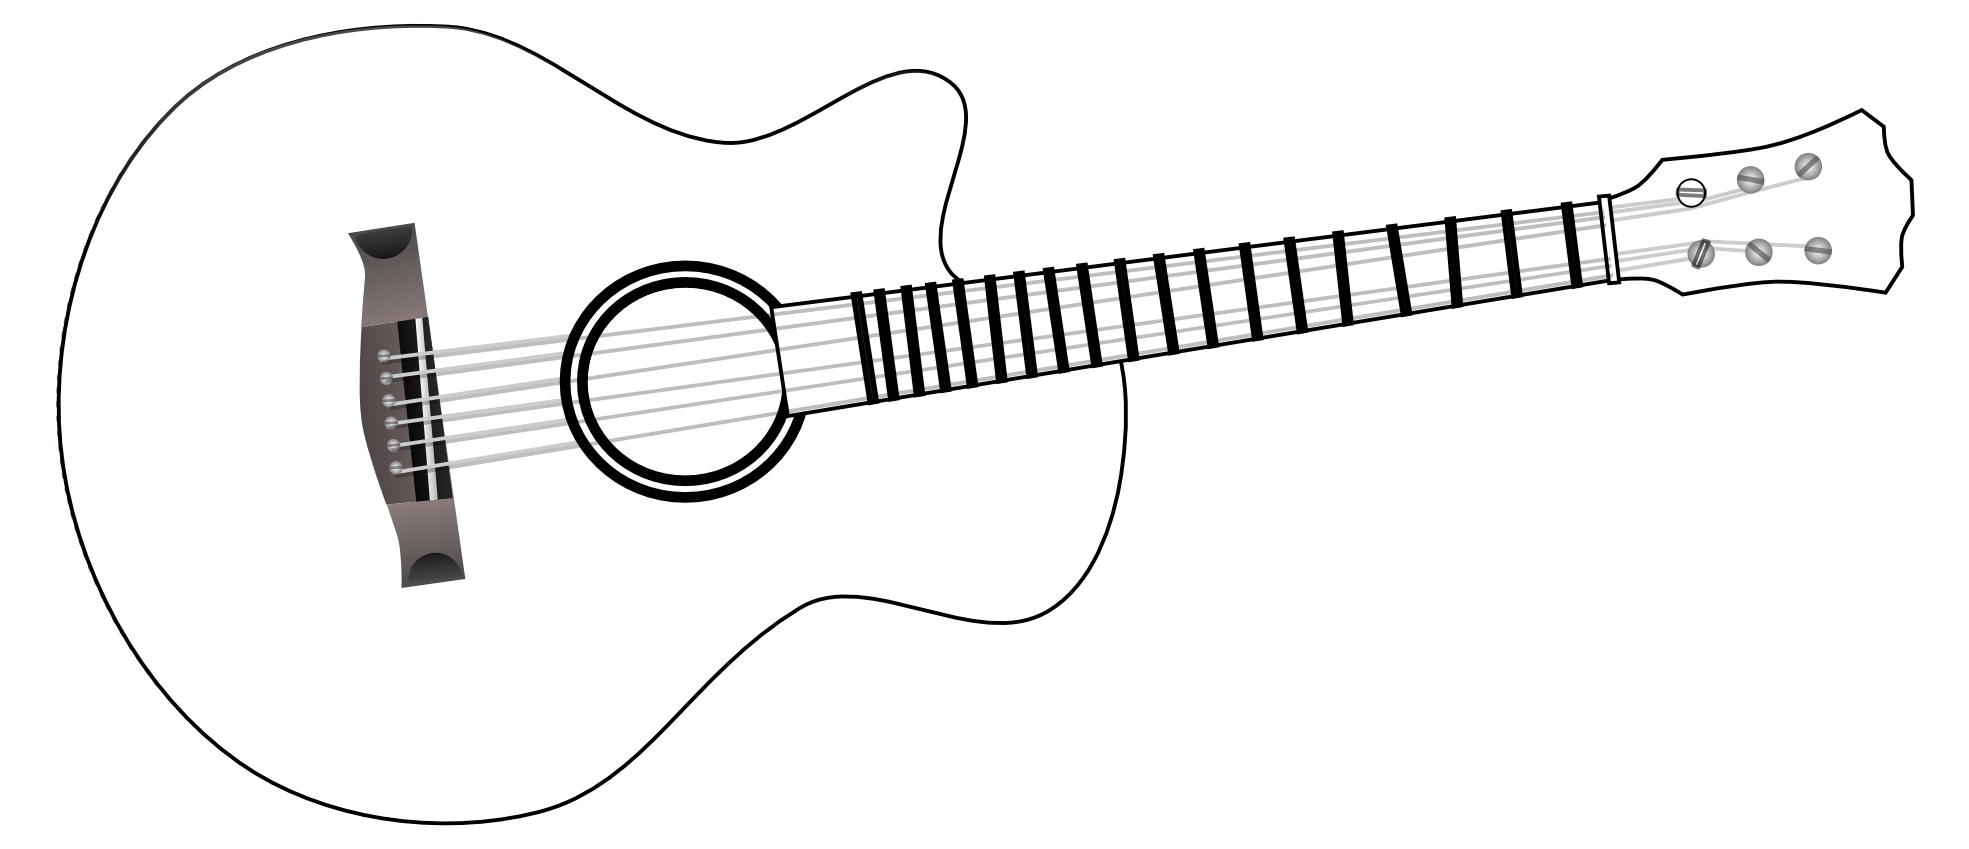 Guitar  black and white black and white acoustic guitar clipart clipartfest